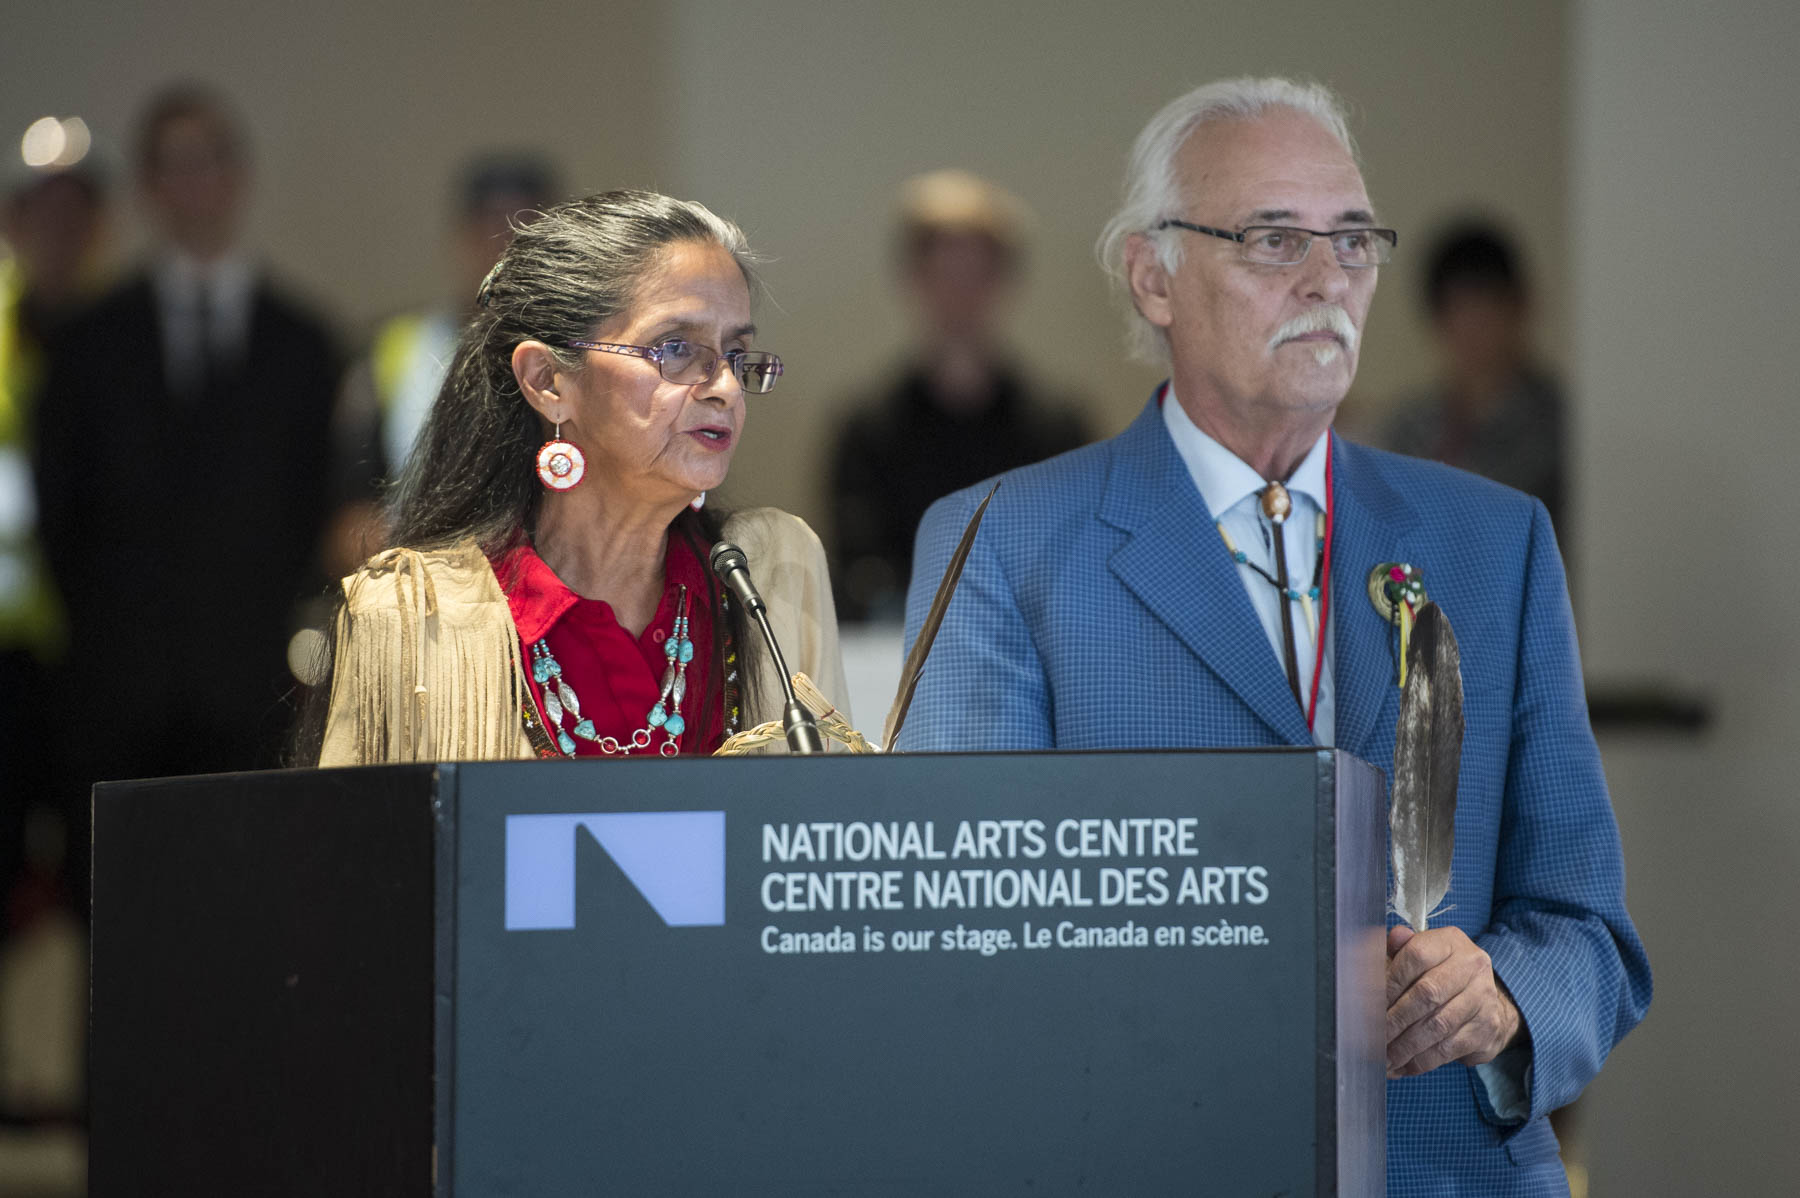 Their Excellencies and His Royal Highness attended the official ceremony for the reopening of the National Arts Centre.